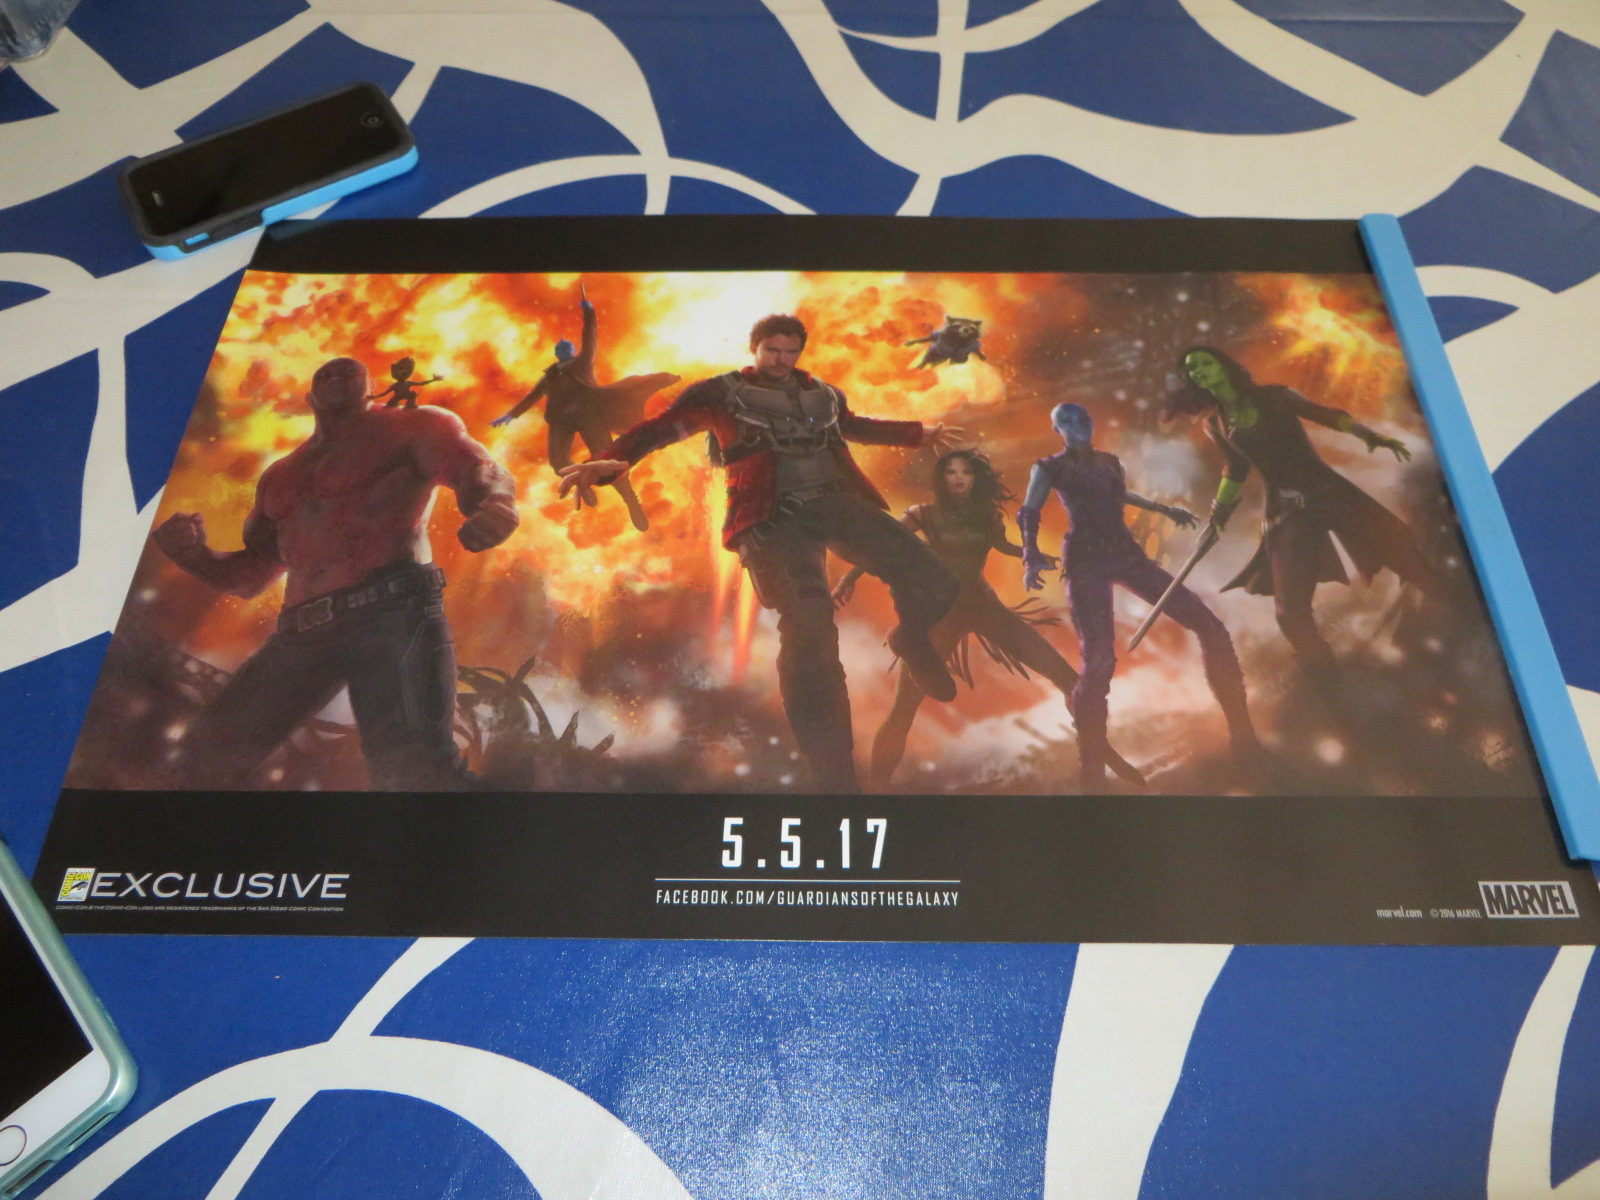 Guardians Of The Galaxy 2 Poster For Sale - Gray Cardigan ...